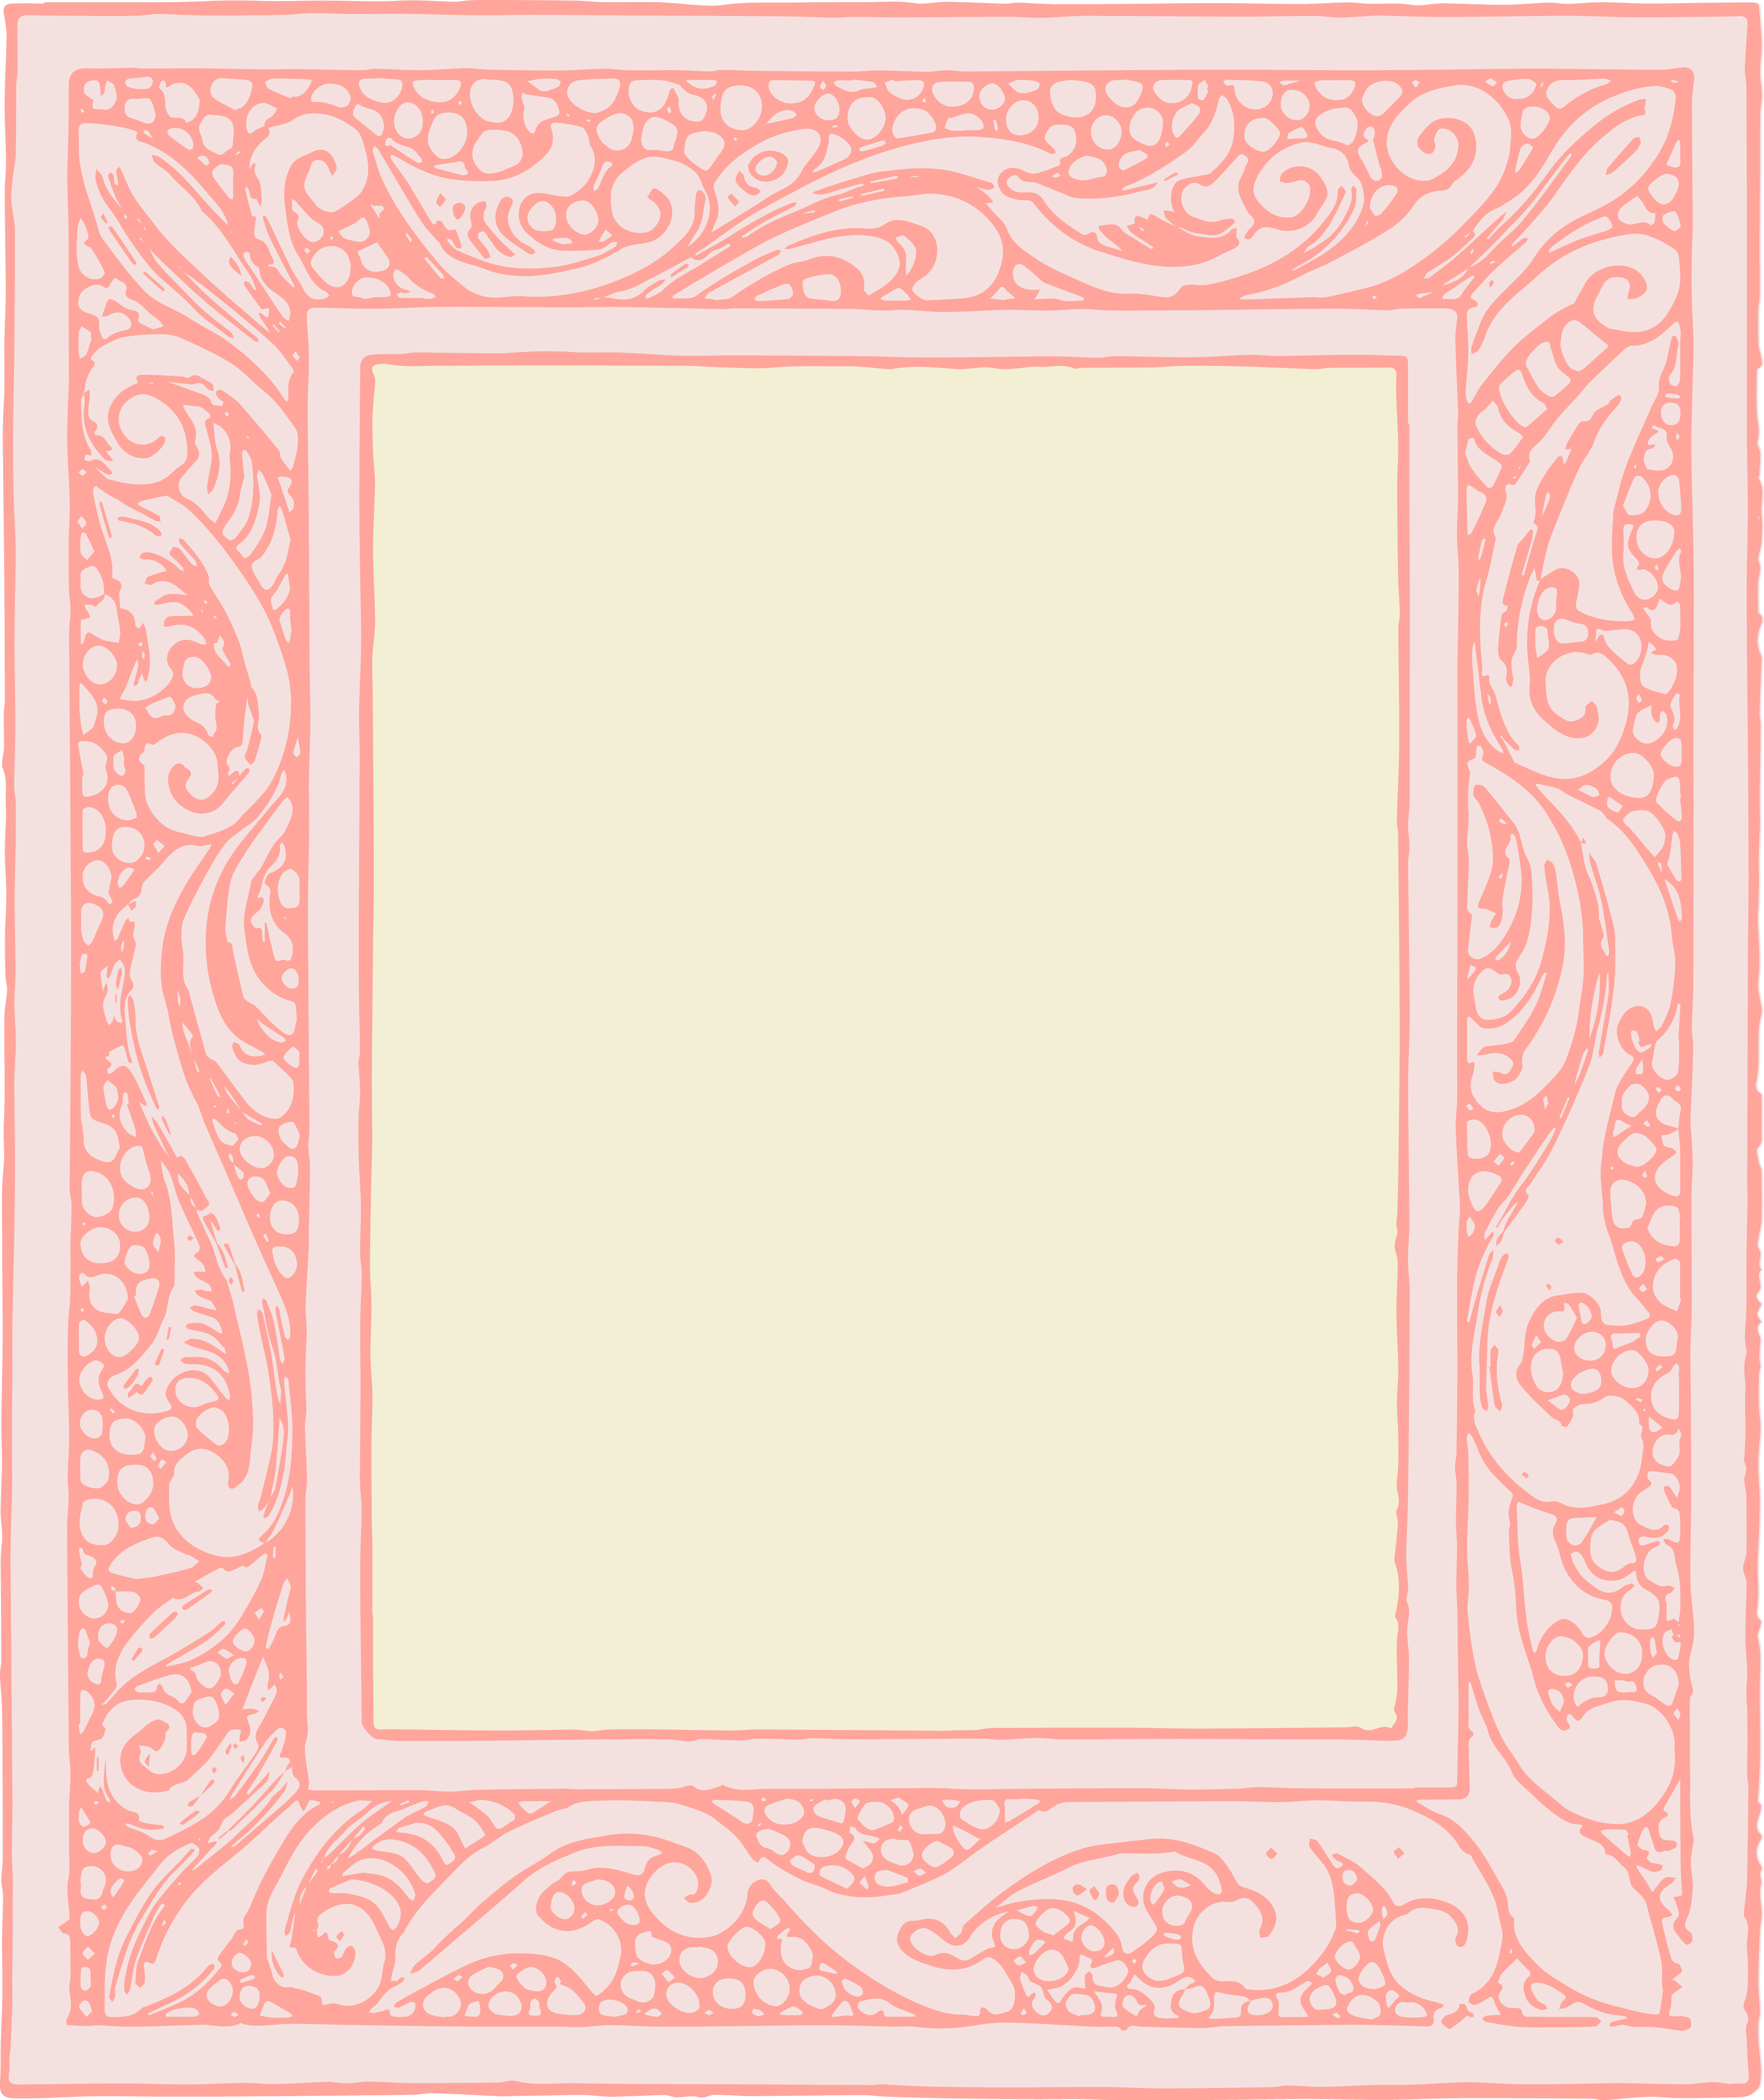 Free Vector Clipart   Vintage Frames   Oh So Nifty Vintage Graphics